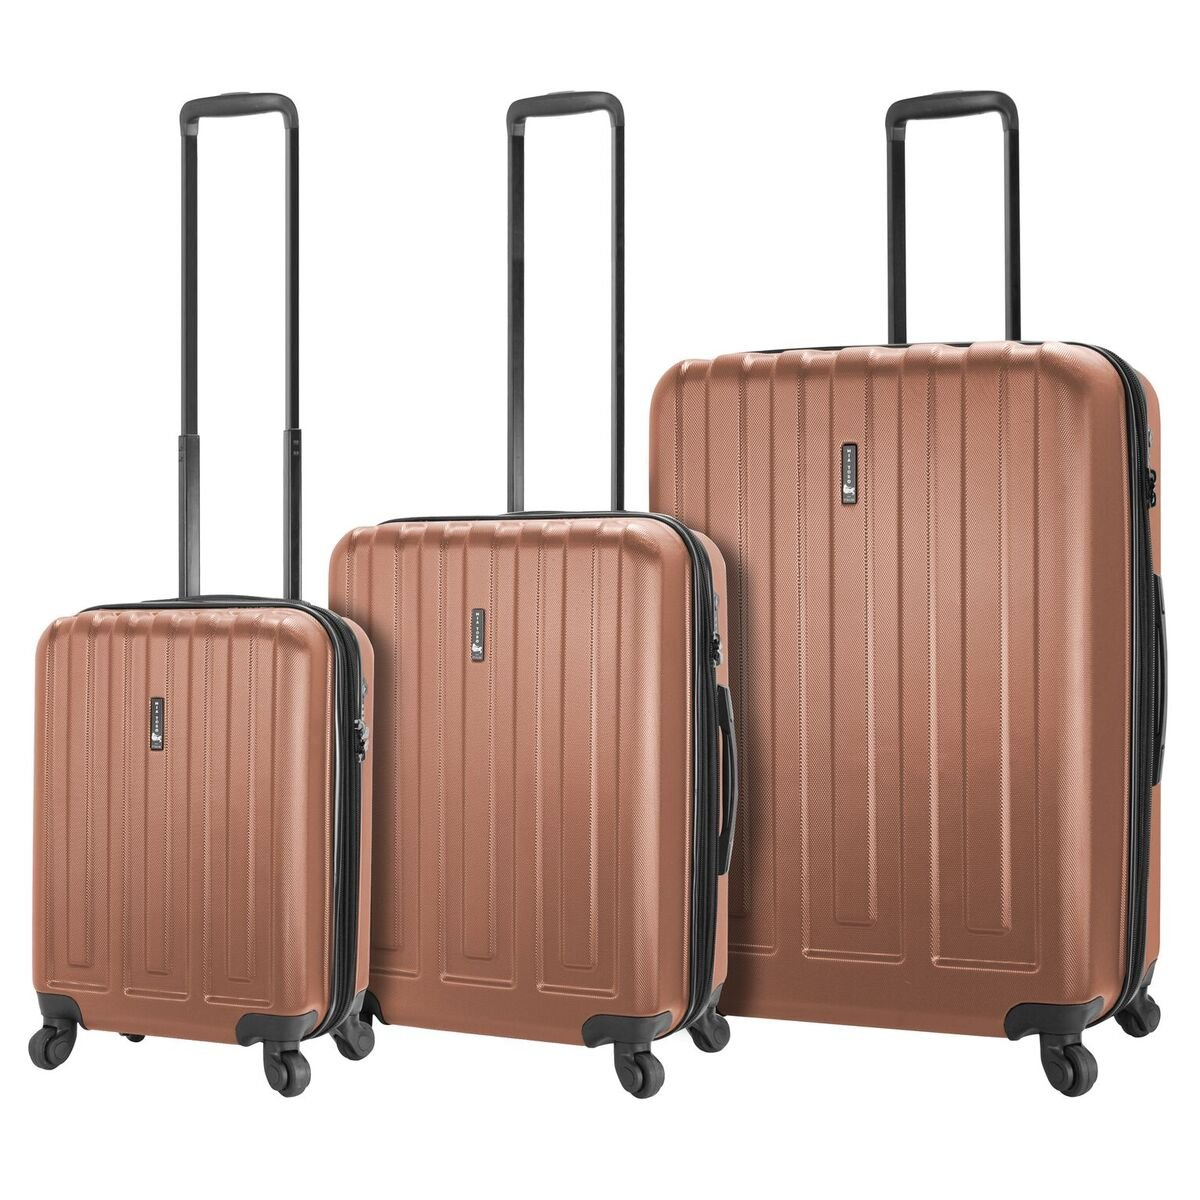 Mia Toro Italy Illeso Hardside Spinner Luggage 3pc Set-Champagne